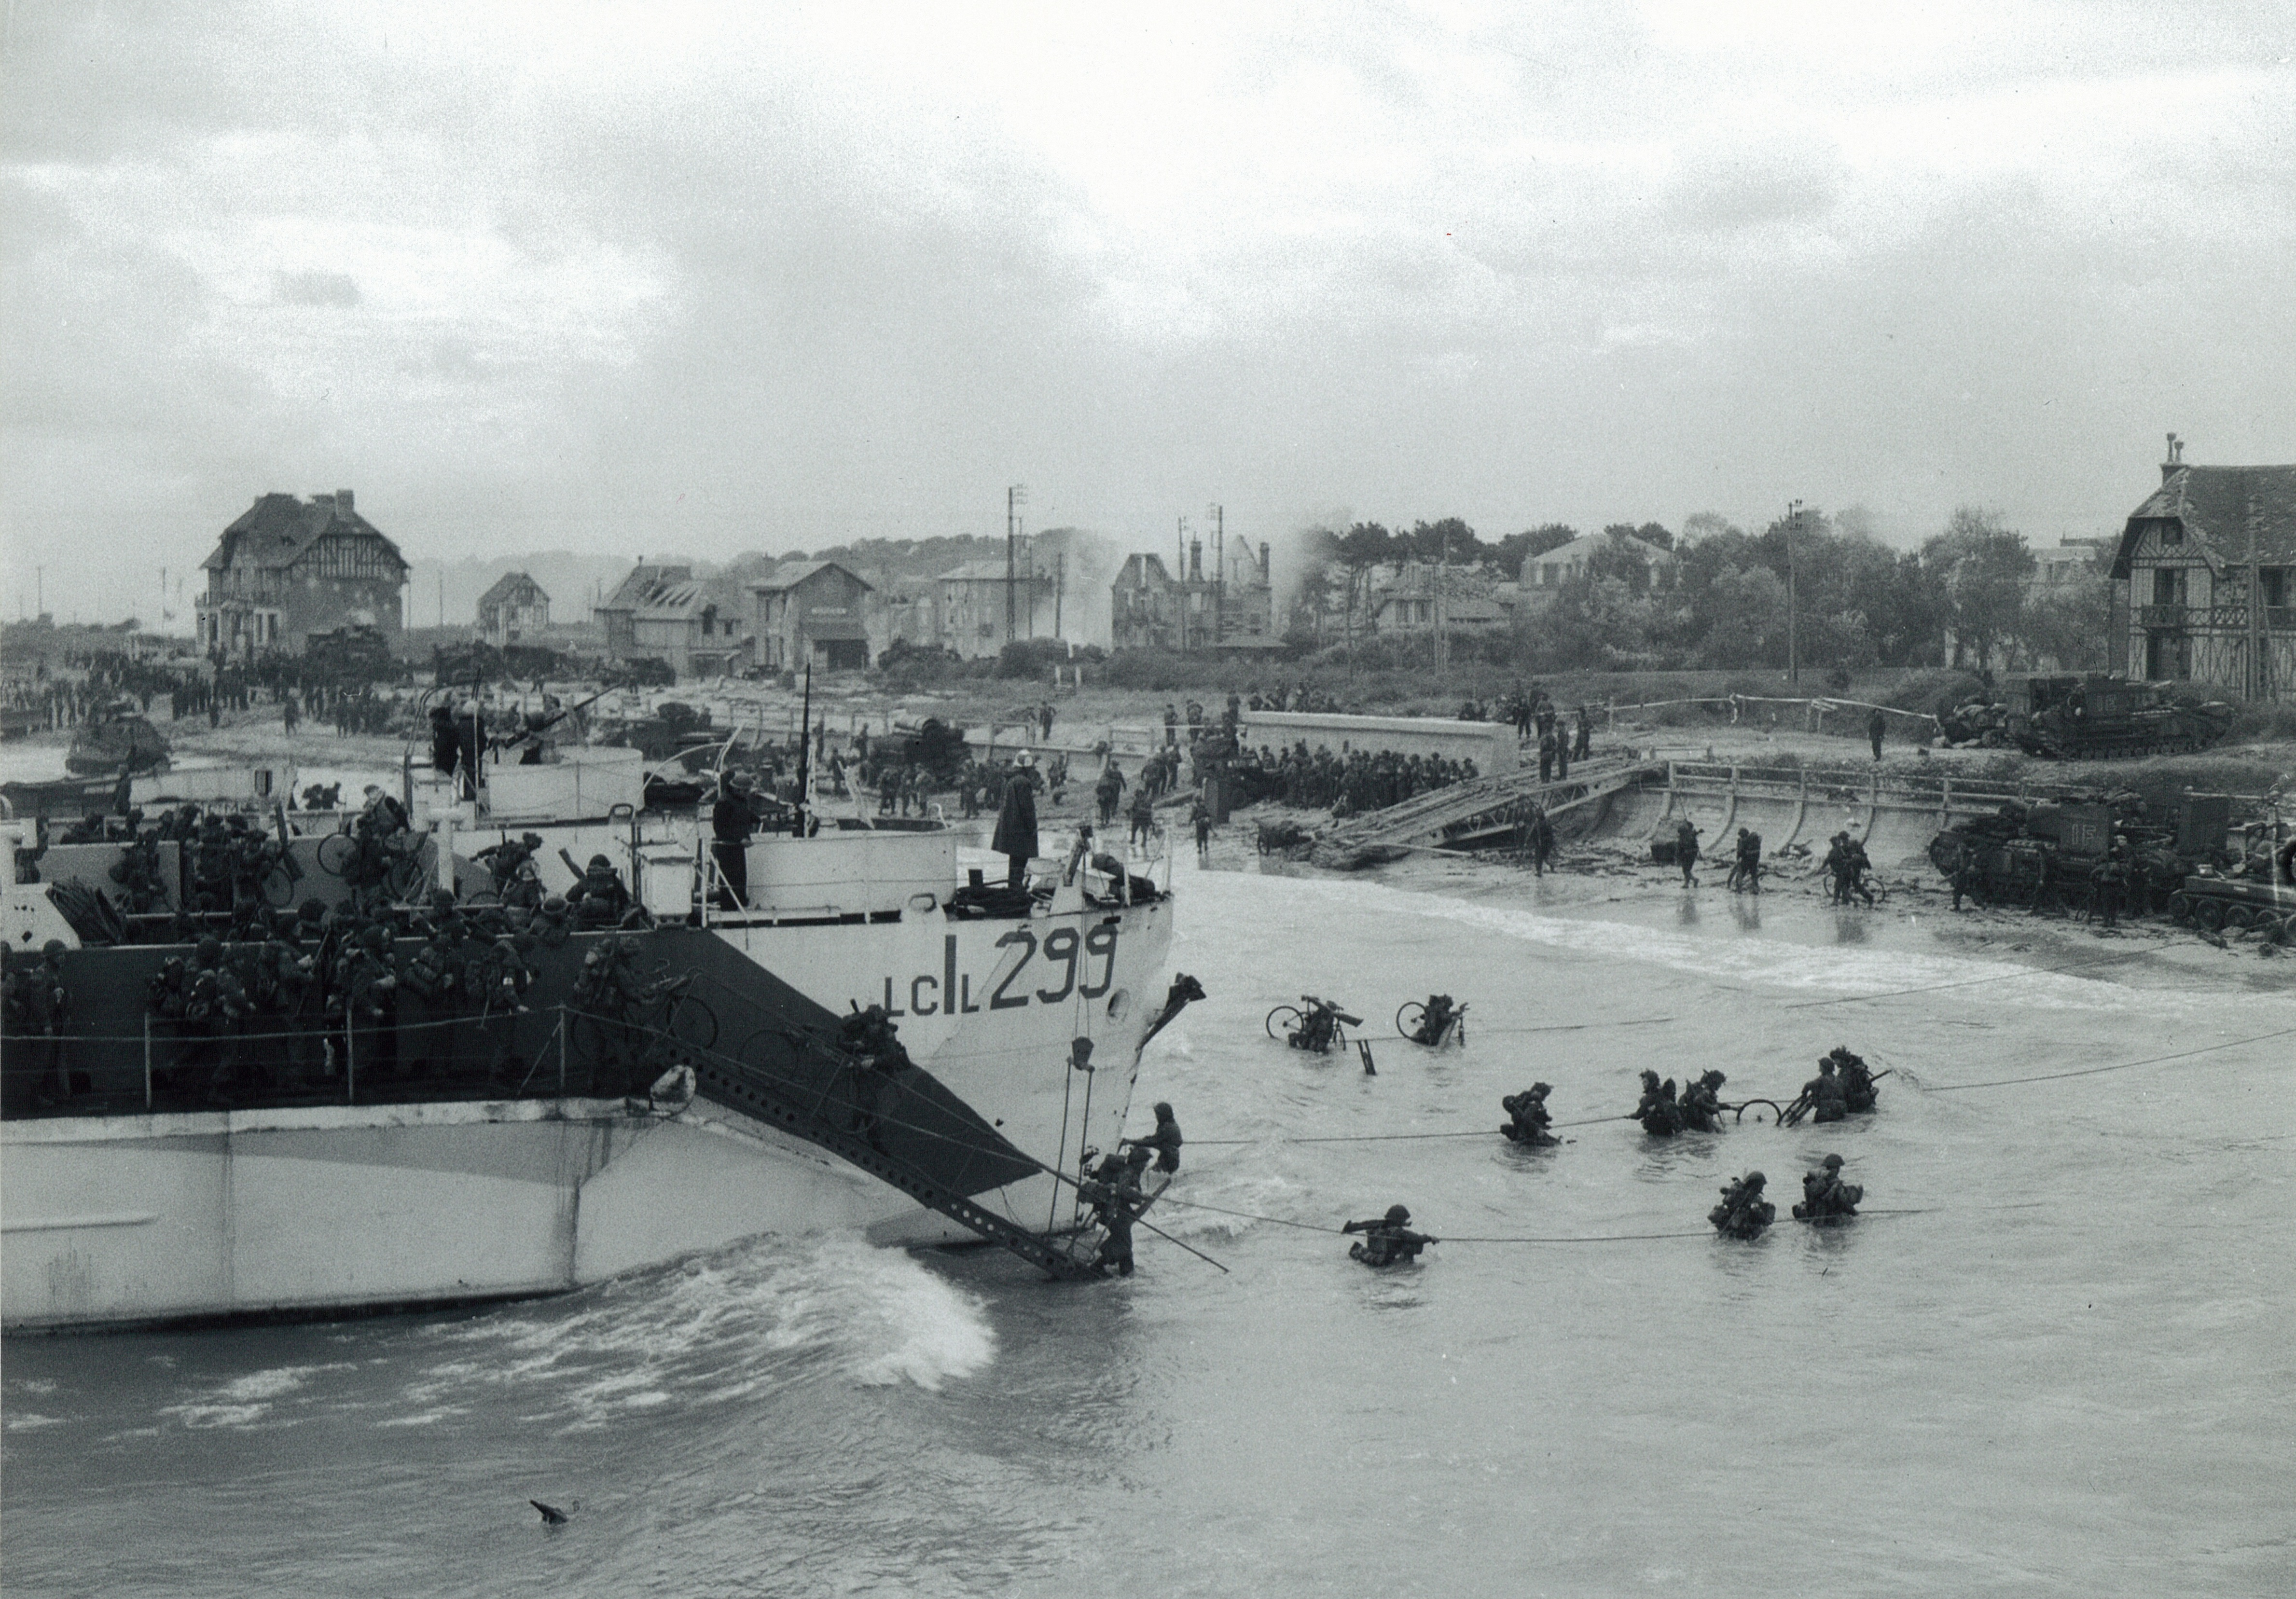 Black and white photograph. Troops of the 9th Canadian Infantry Brigade (Stormont, Dundas, and Glengarry Highlanders) going ashore from LCI (L) 299 [Landing Craft Infantry], Bernières-sur-mer, Normandy, France, 6 June 1944.  Source: Lieut. Gilbert A. Milne / DND / Library and Archives Canada / PA-131506 / Courtesy of the Juno Beach Centre Association